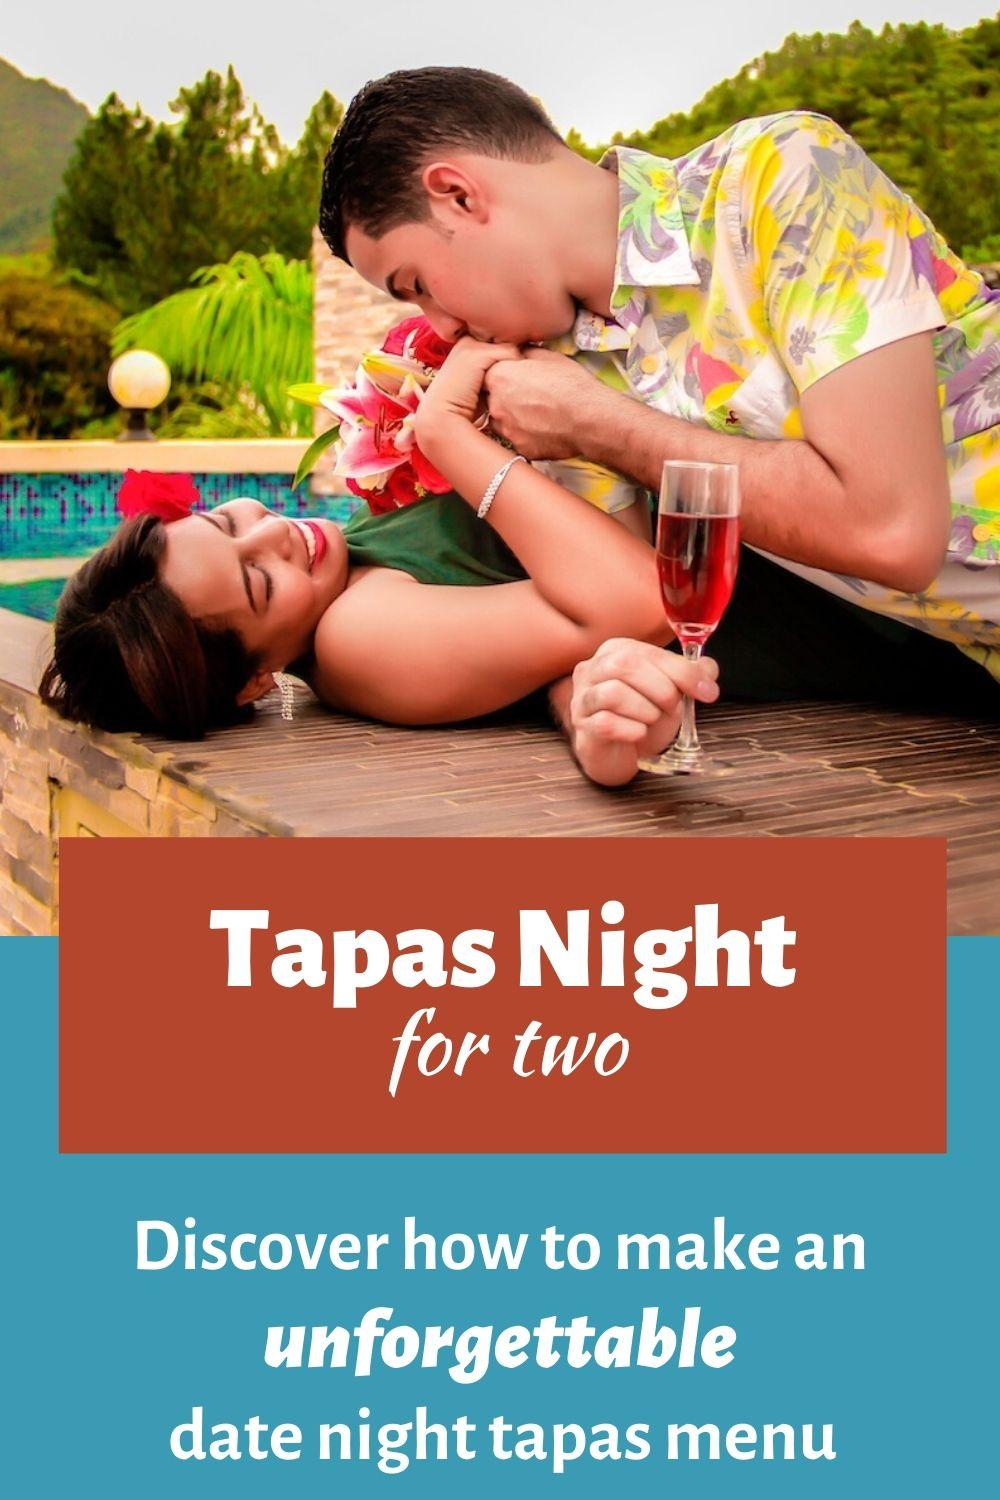 Date Night Tapas Menu for Two